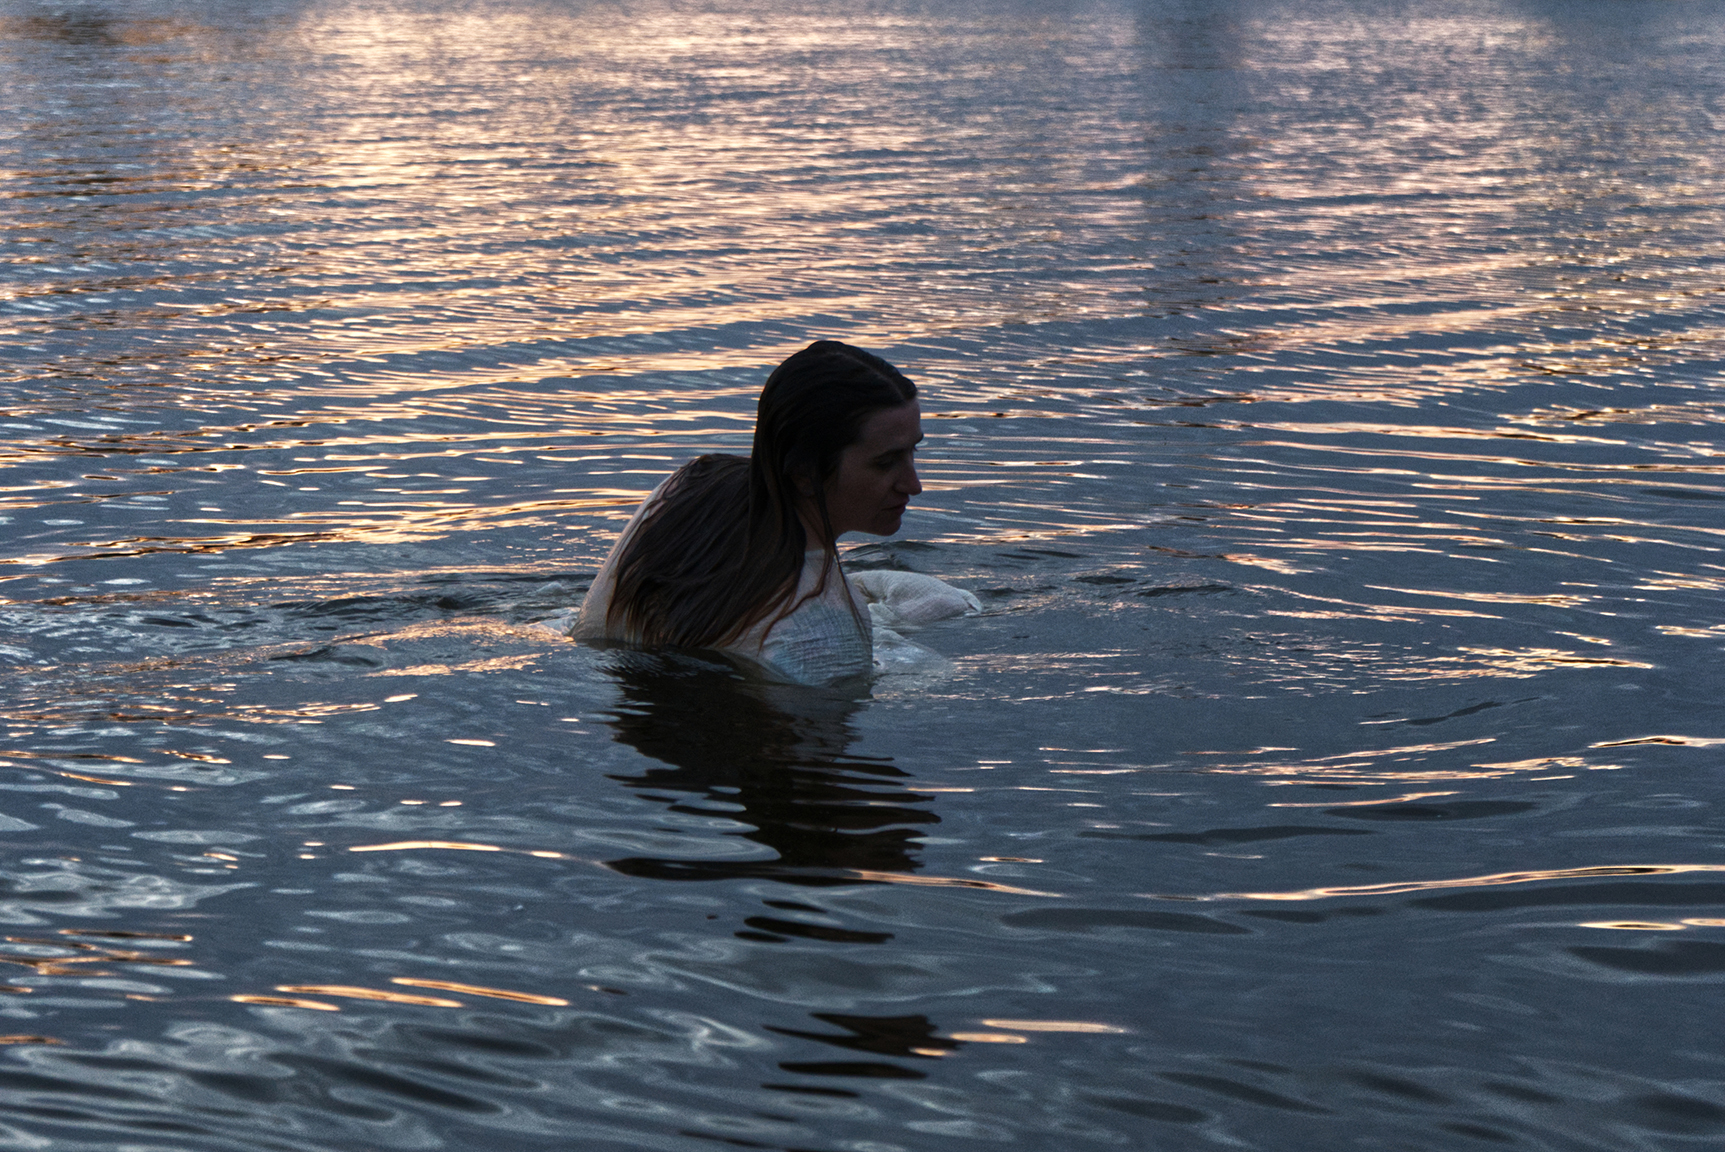 """Baptism"" (Image from Performance Art/Installation) by Paige Holzbauer"